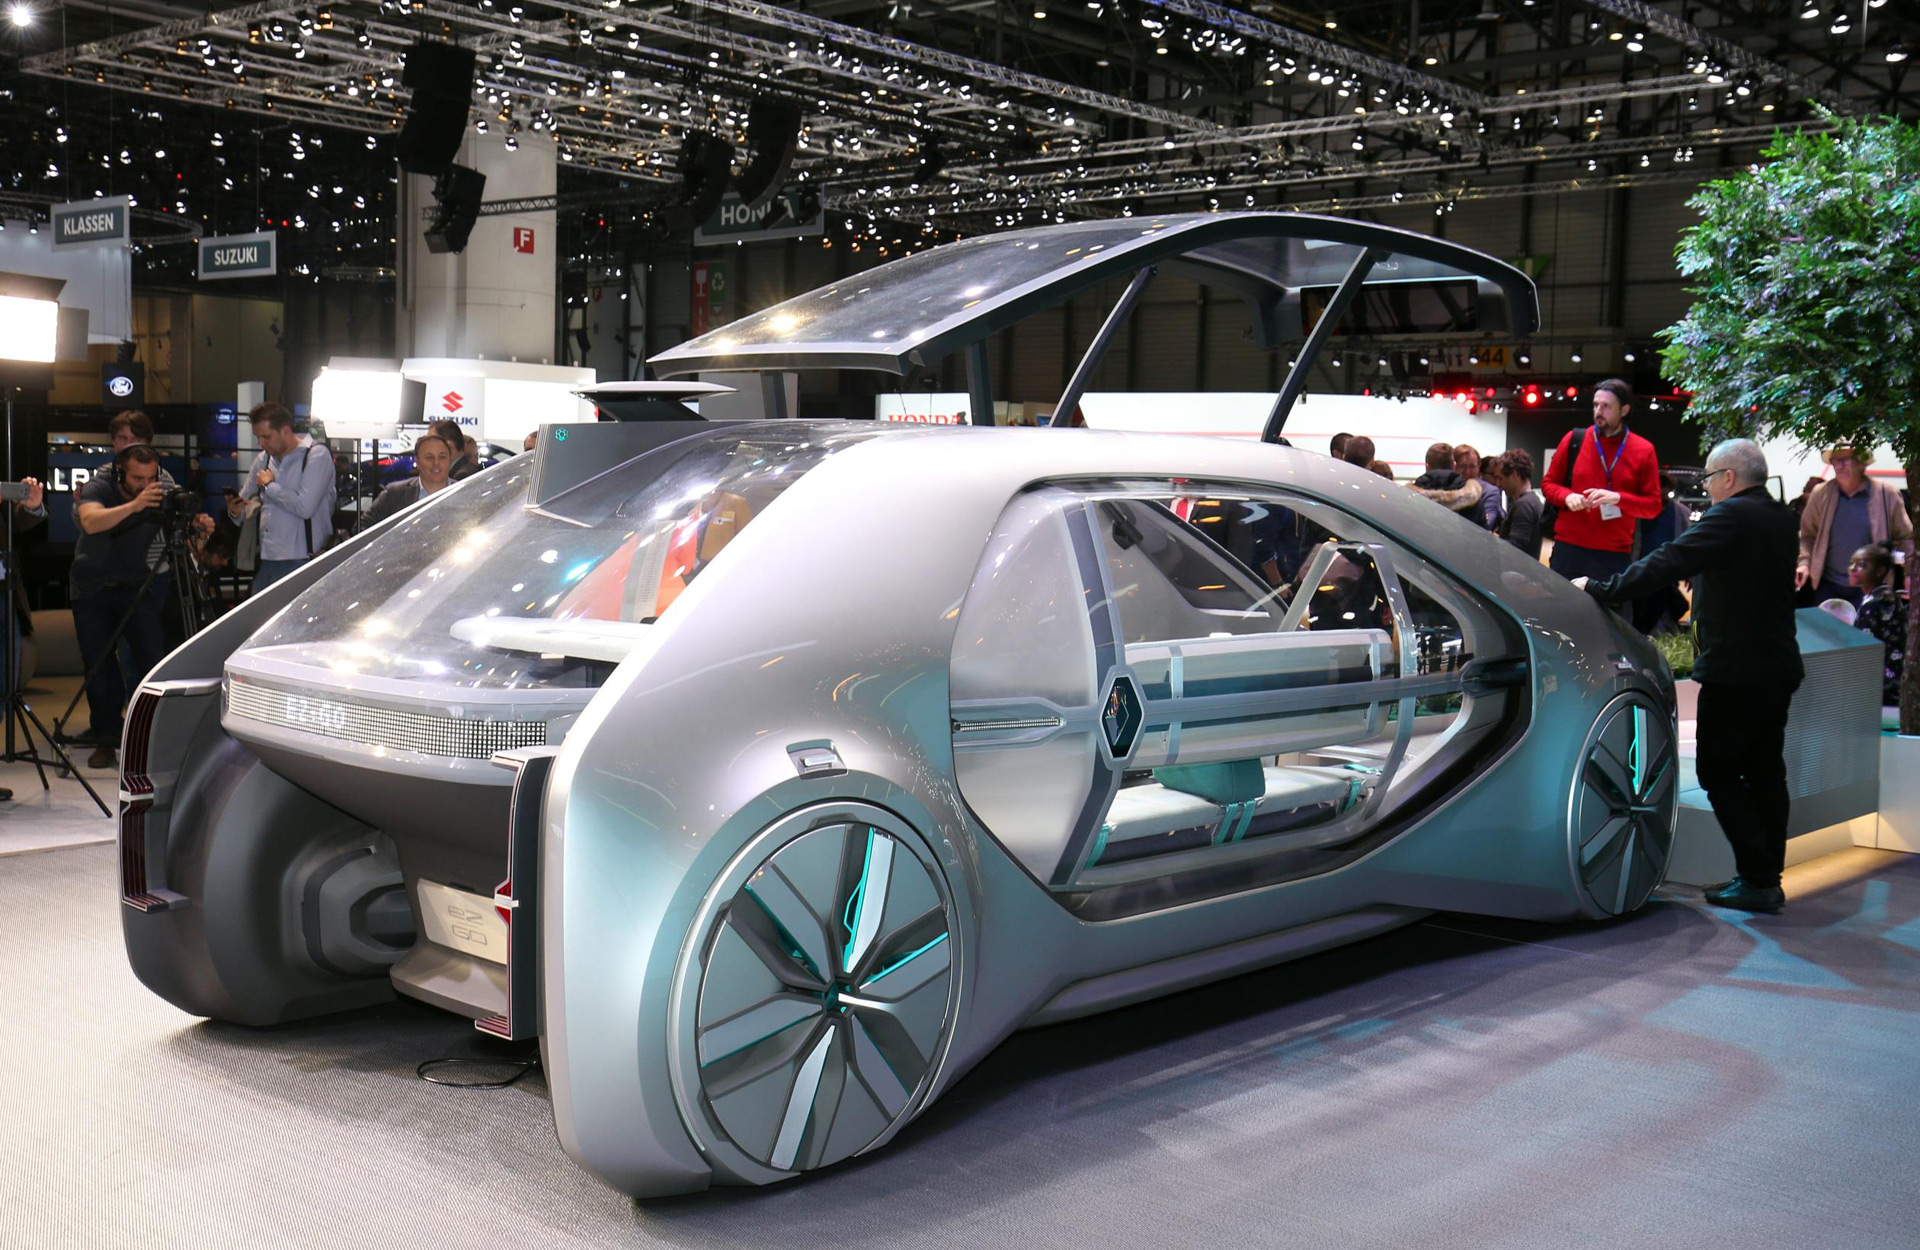 Renault envisions a self-driving ride-share future with EZ-GO concept